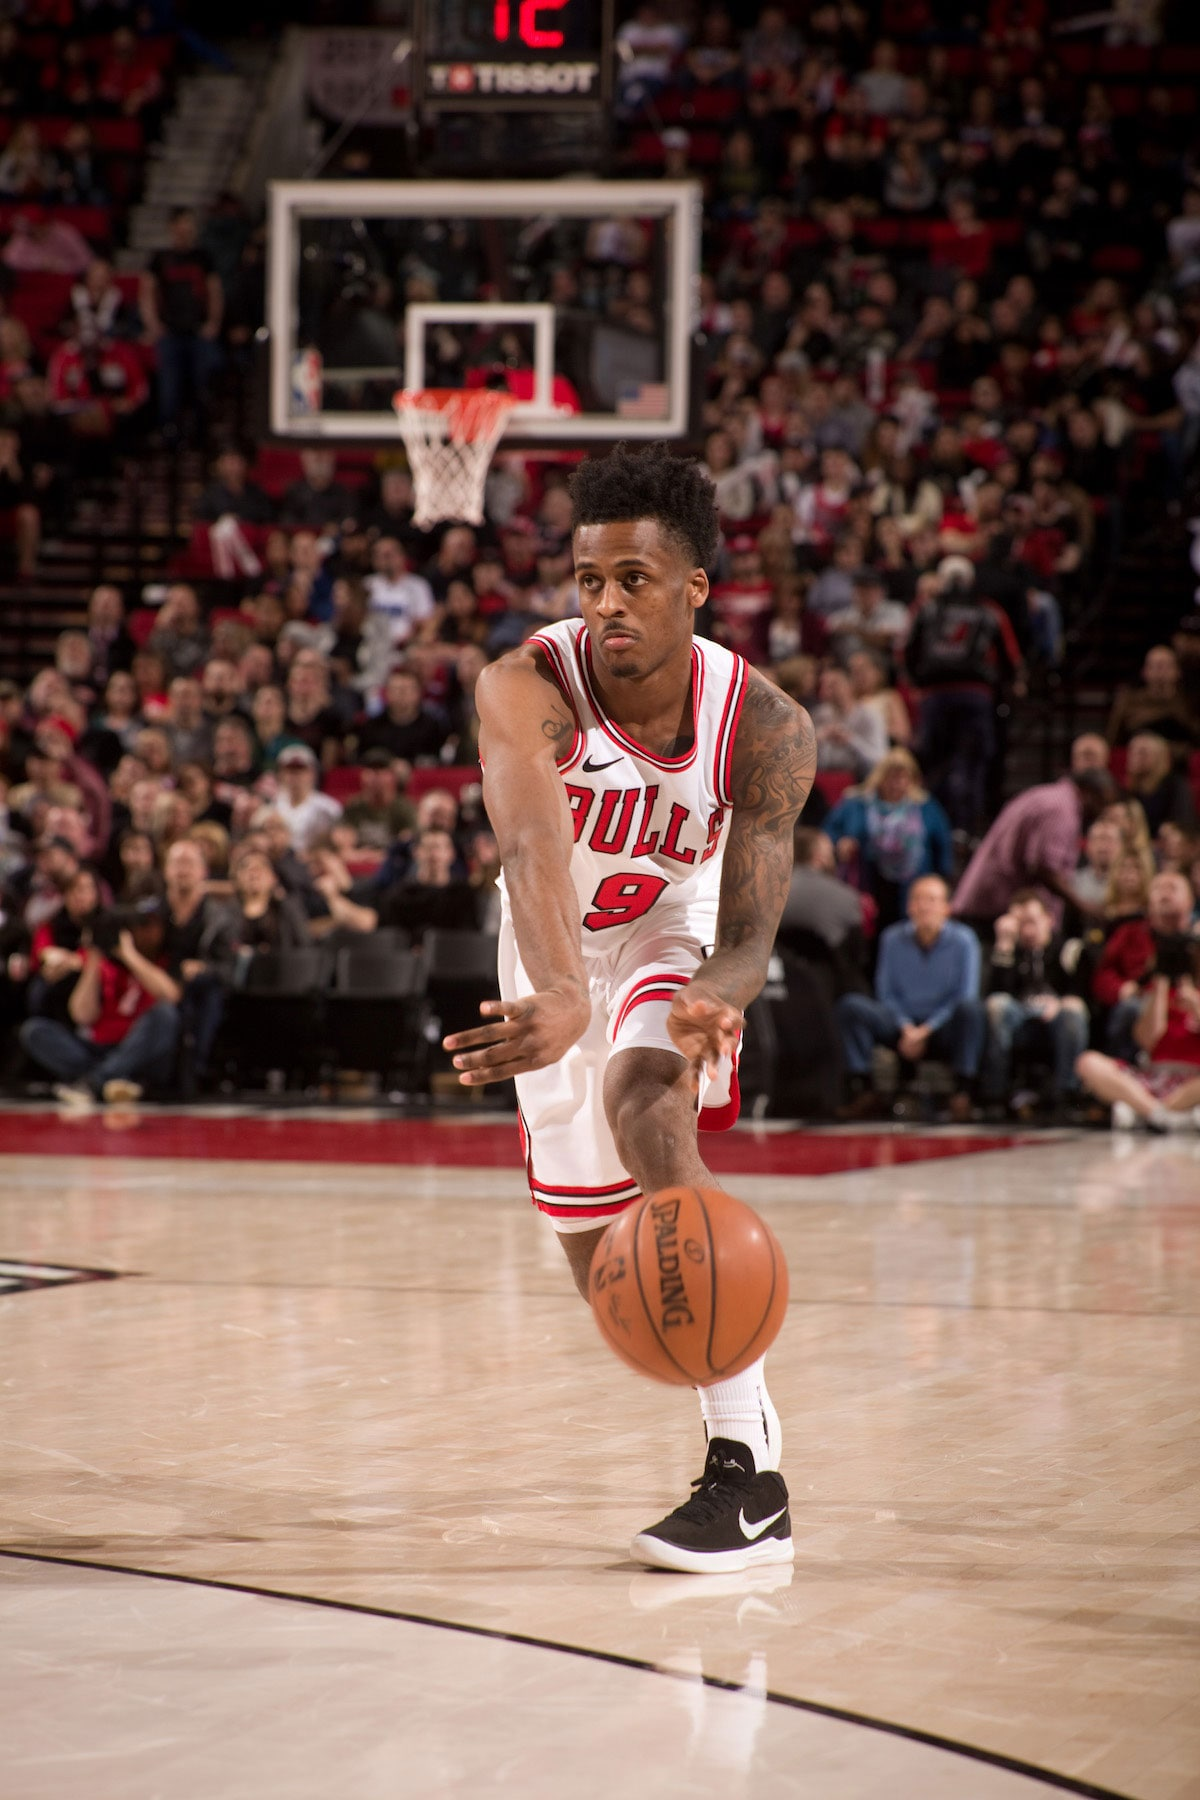 Antonio Blakeney #9 of the Chicago Bulls handles the ball during the game against the Portland Trail Blazers on January 31, 2018 at the Moda Center Arena in Portland, Oregon.